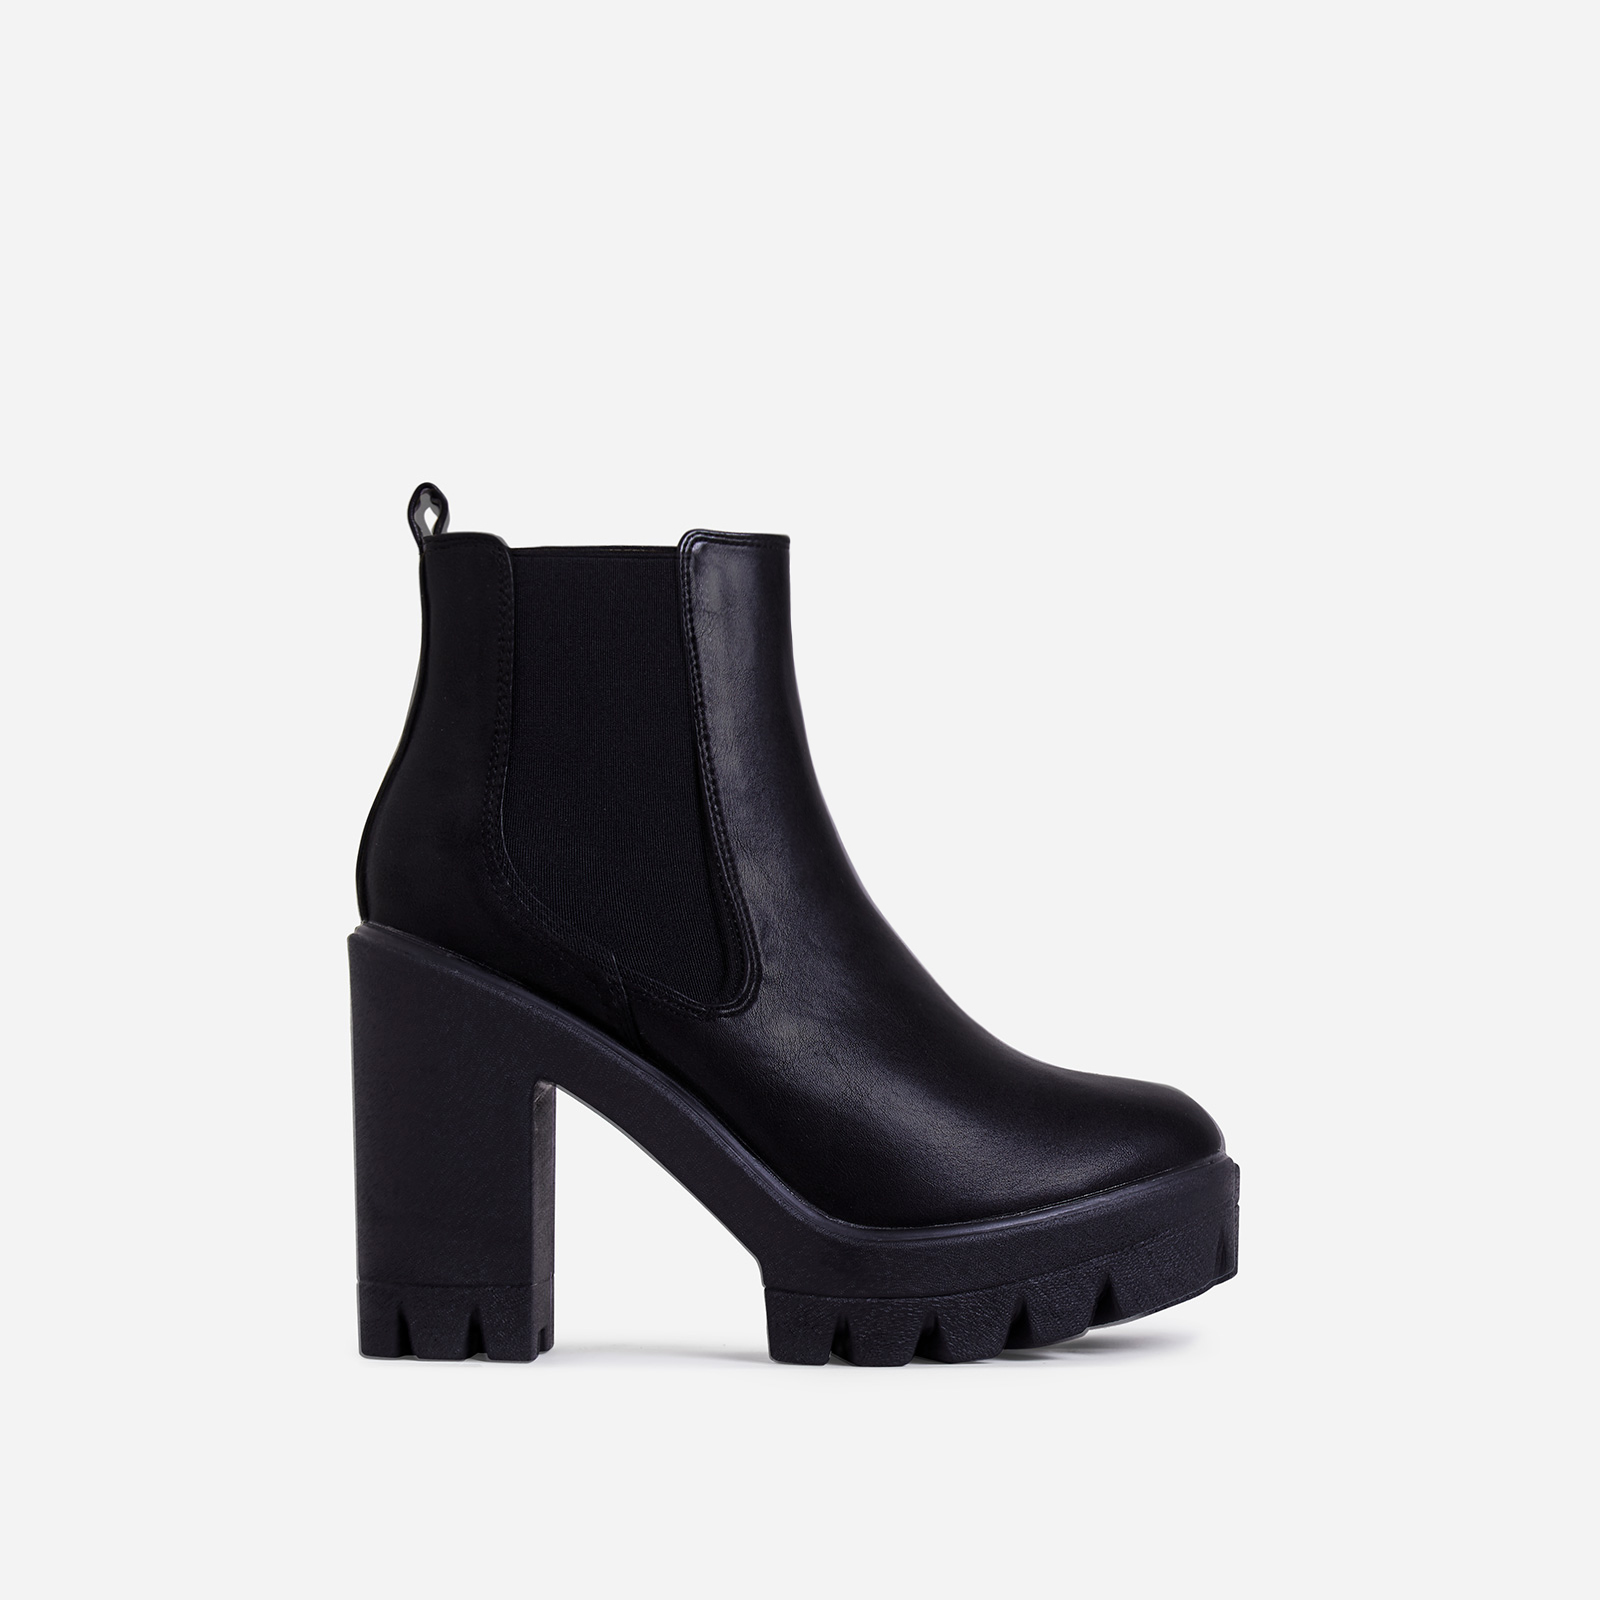 Liya Chunky Sole Ankle Chelsea Boot In Black Faux Leather